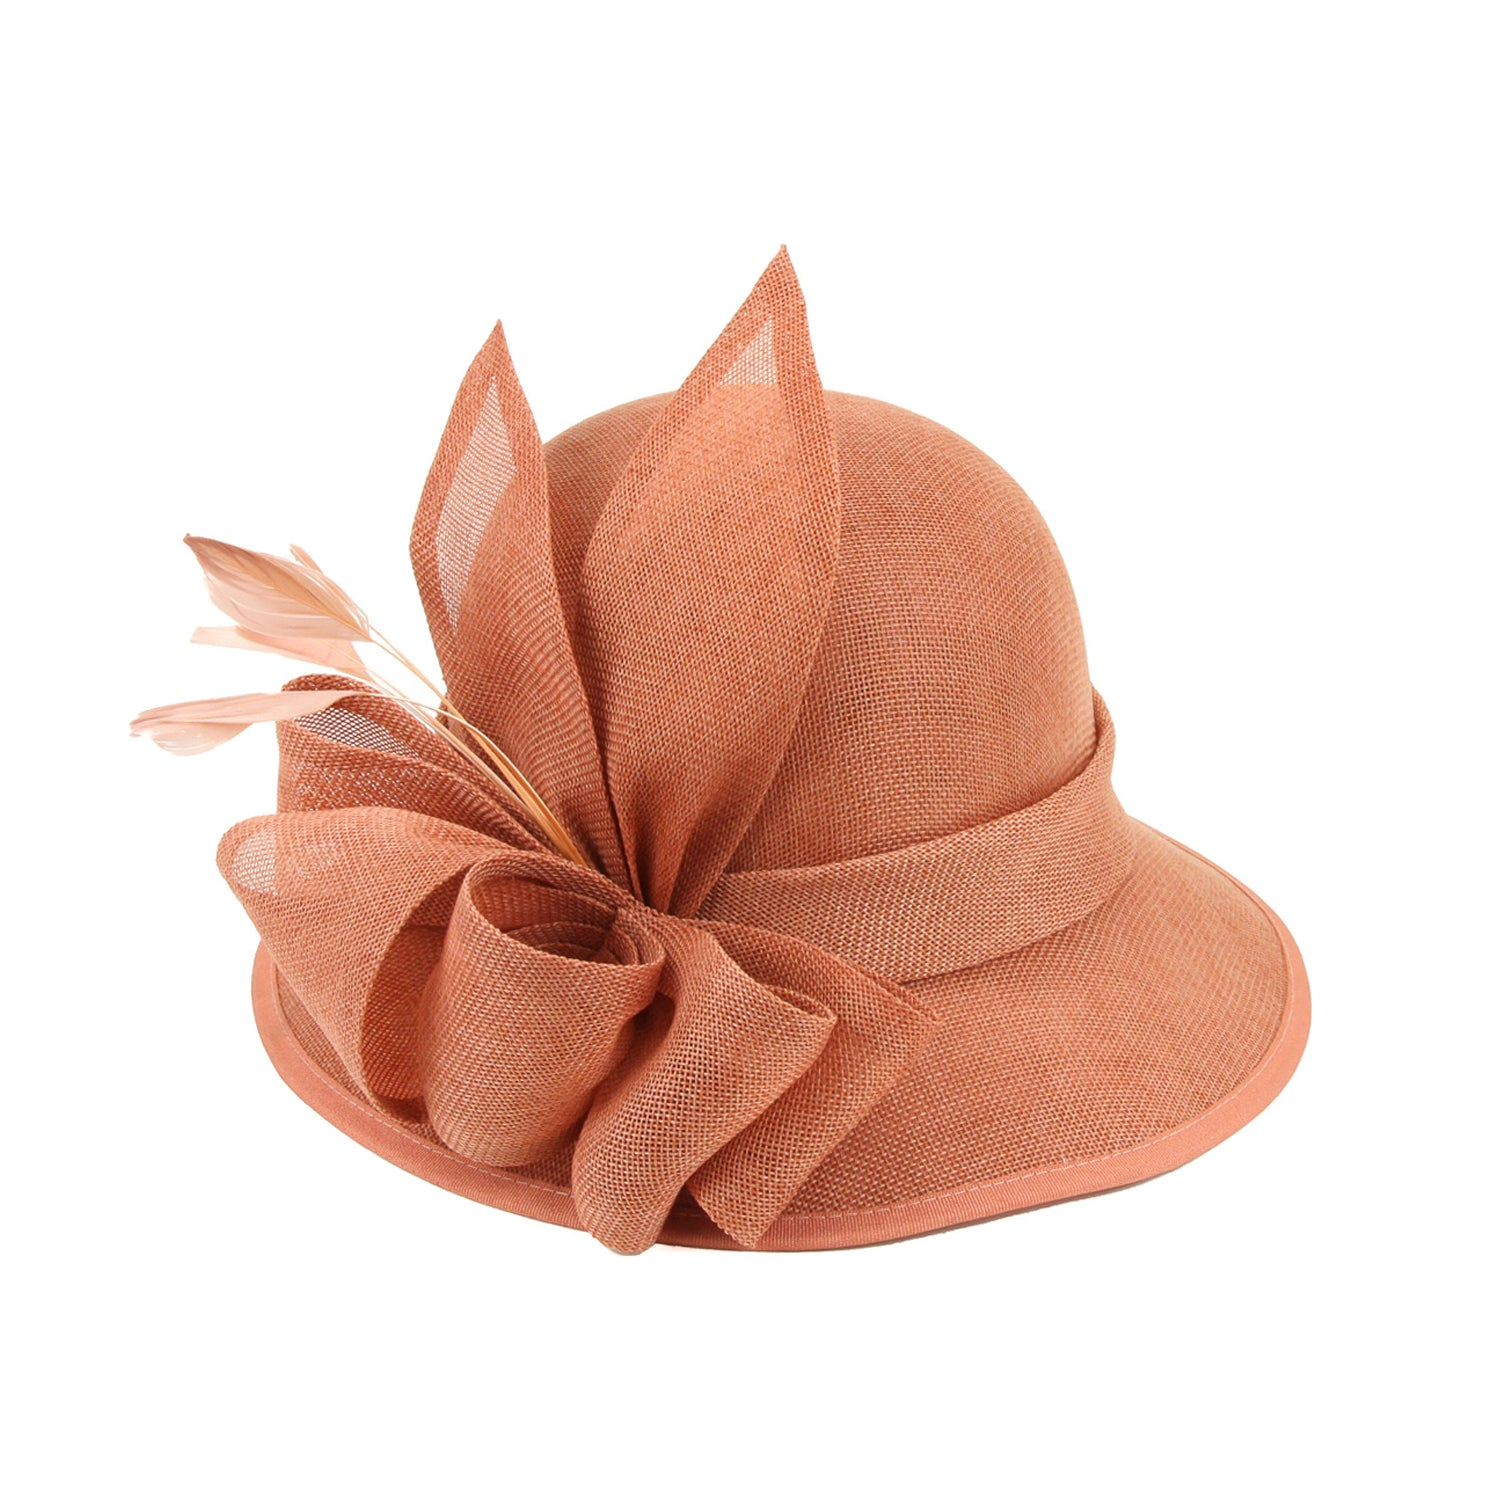 1920s Style Hats 1920s Flapper Style Hat in Coral $50.00 AT vintagedancer.com